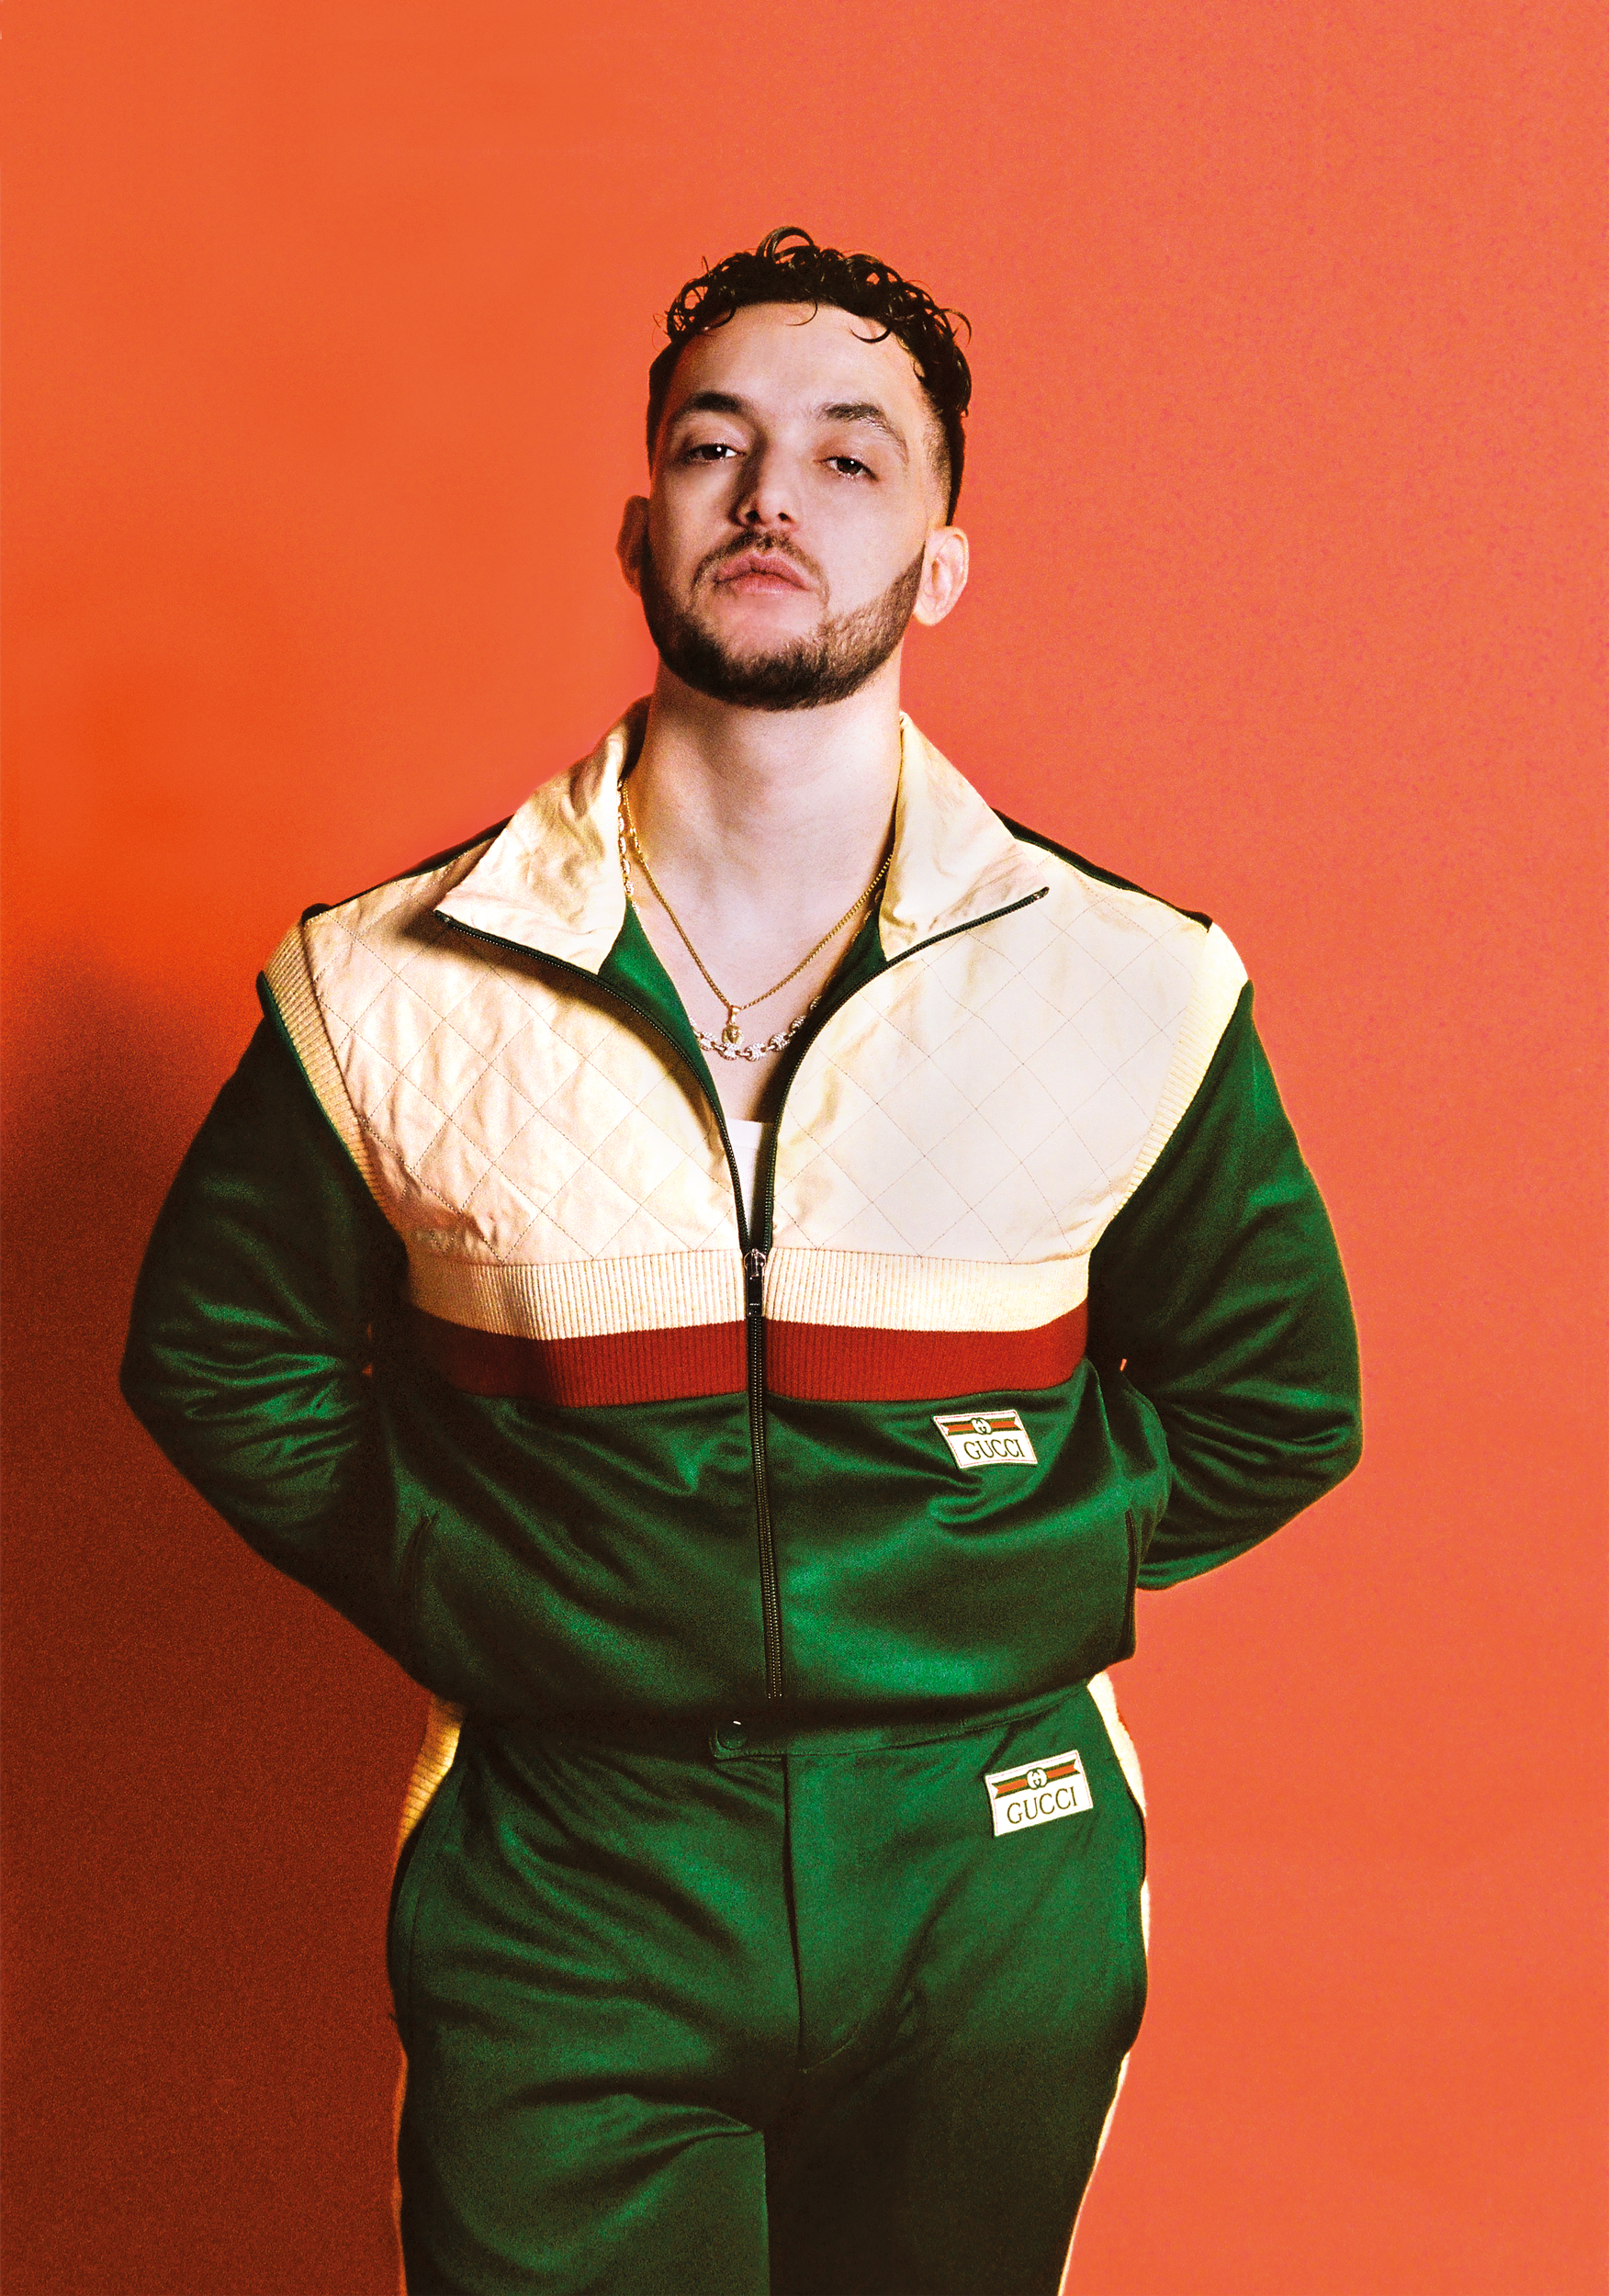 C. Tangana photographed for RS Colombia